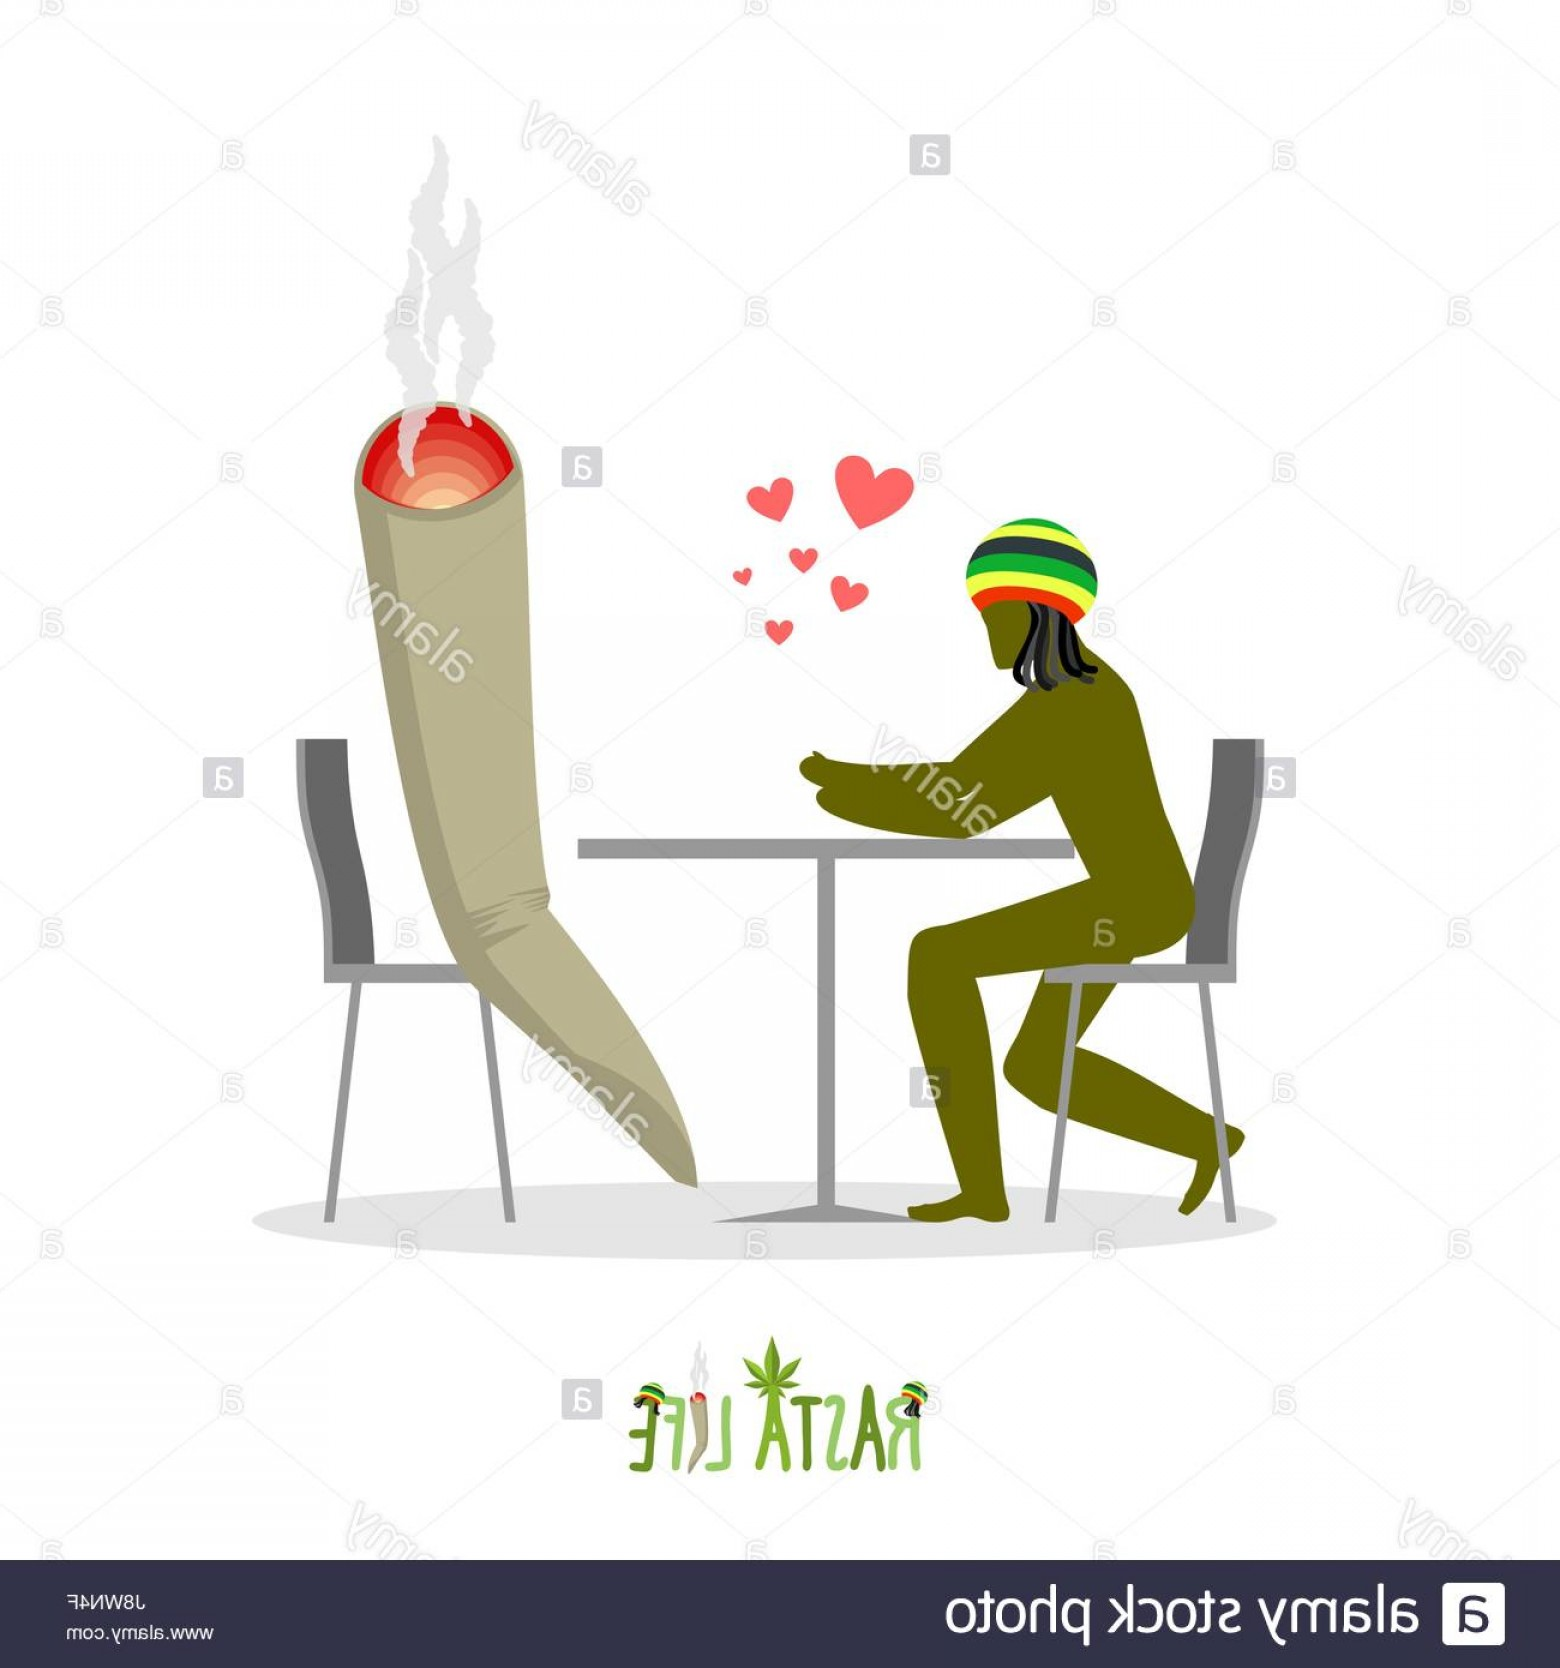 Vector Silhouette Man Smoking Marijuana: Stock Photo Rasta Life Rastaman And Joint Or Spliff In Cafe Man And Smoking Drug